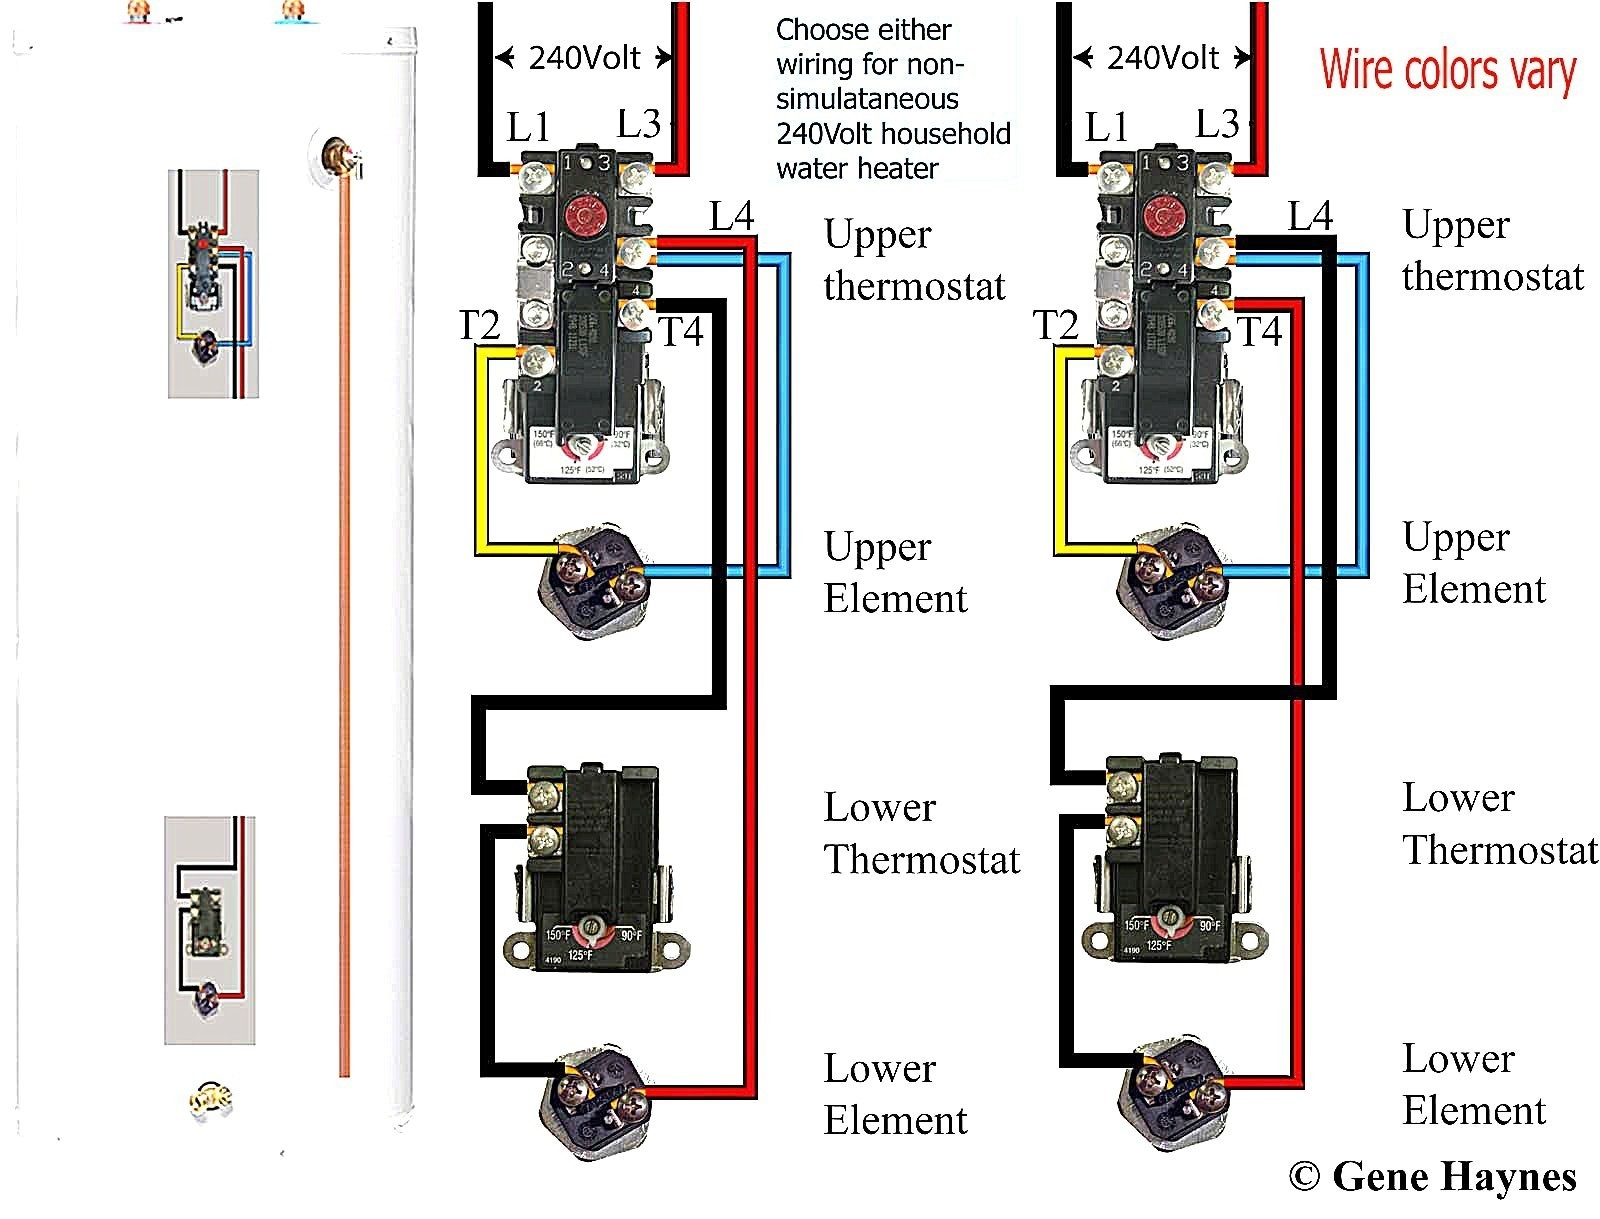 ao smith water heater thermostat wiring diagram Collection-Wiring Diagram Electric Water Heater Fresh Wiring Diagram for An Electric Water Heater Refrence Electric Water 2-i